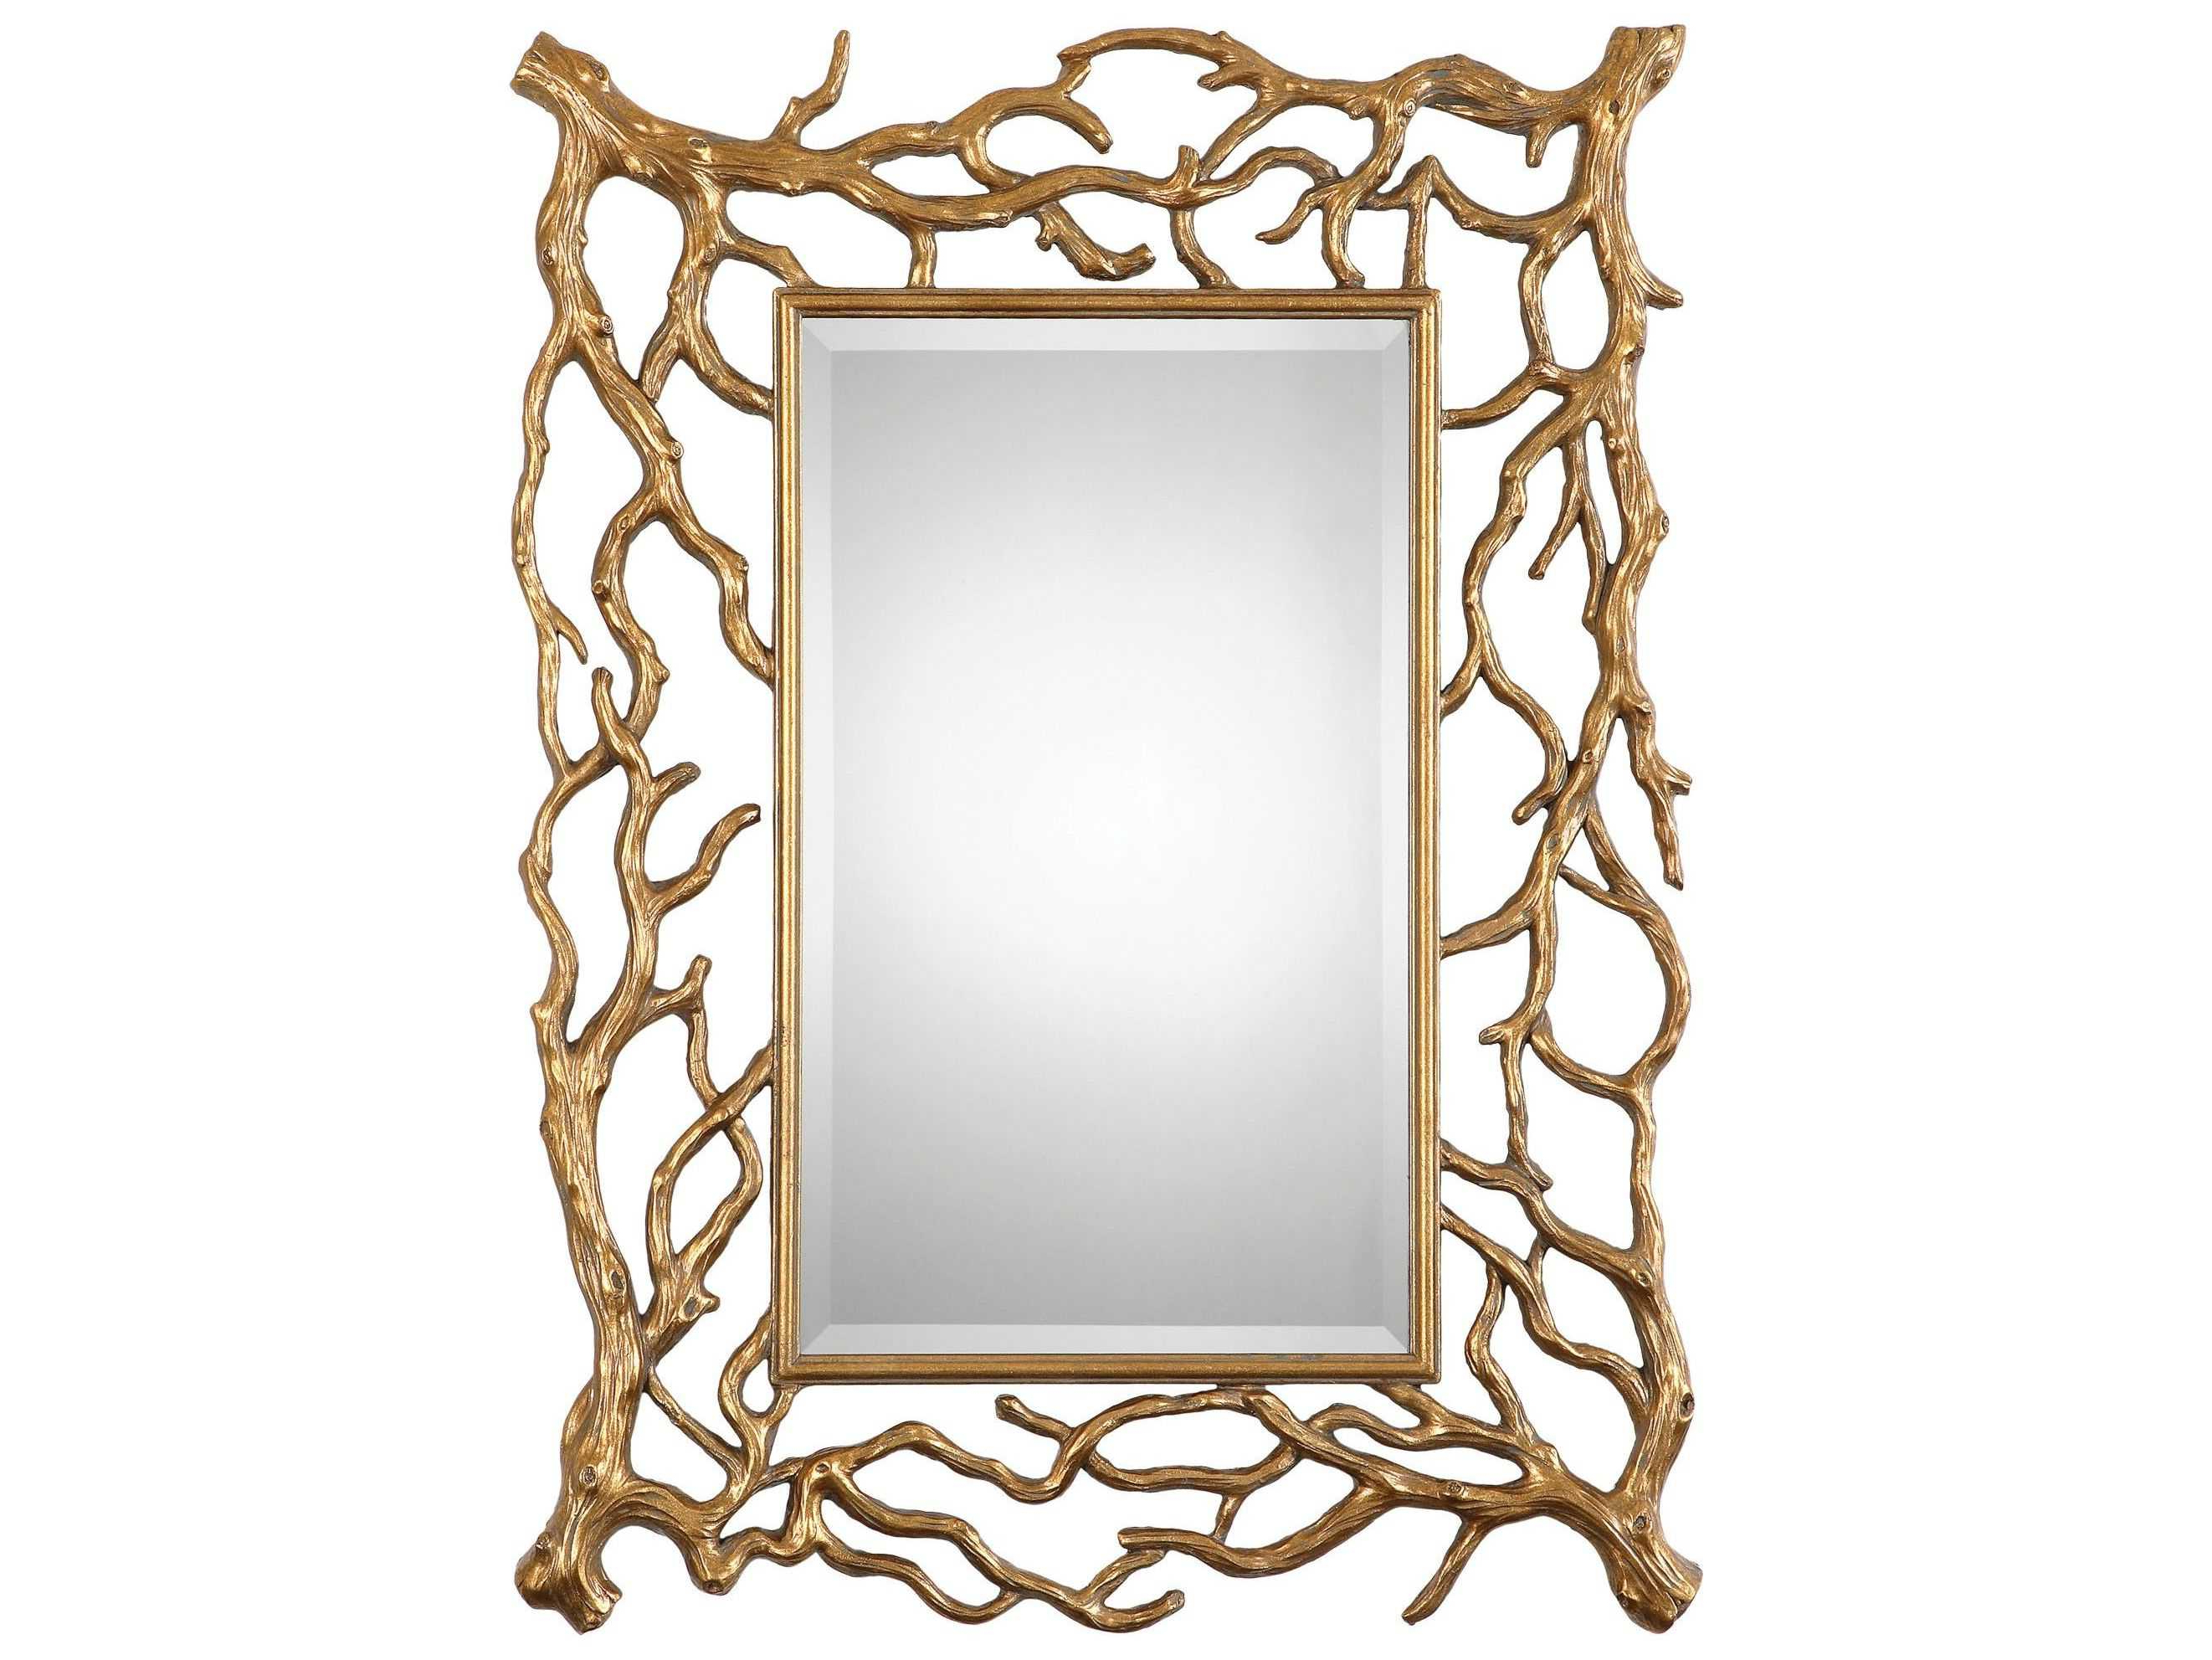 Uttermost Sequoia 30 X 40 Gold Tree Branch Wall Mirror Pertaining To Well Known Talida Wall Mirrors (View 20 of 20)